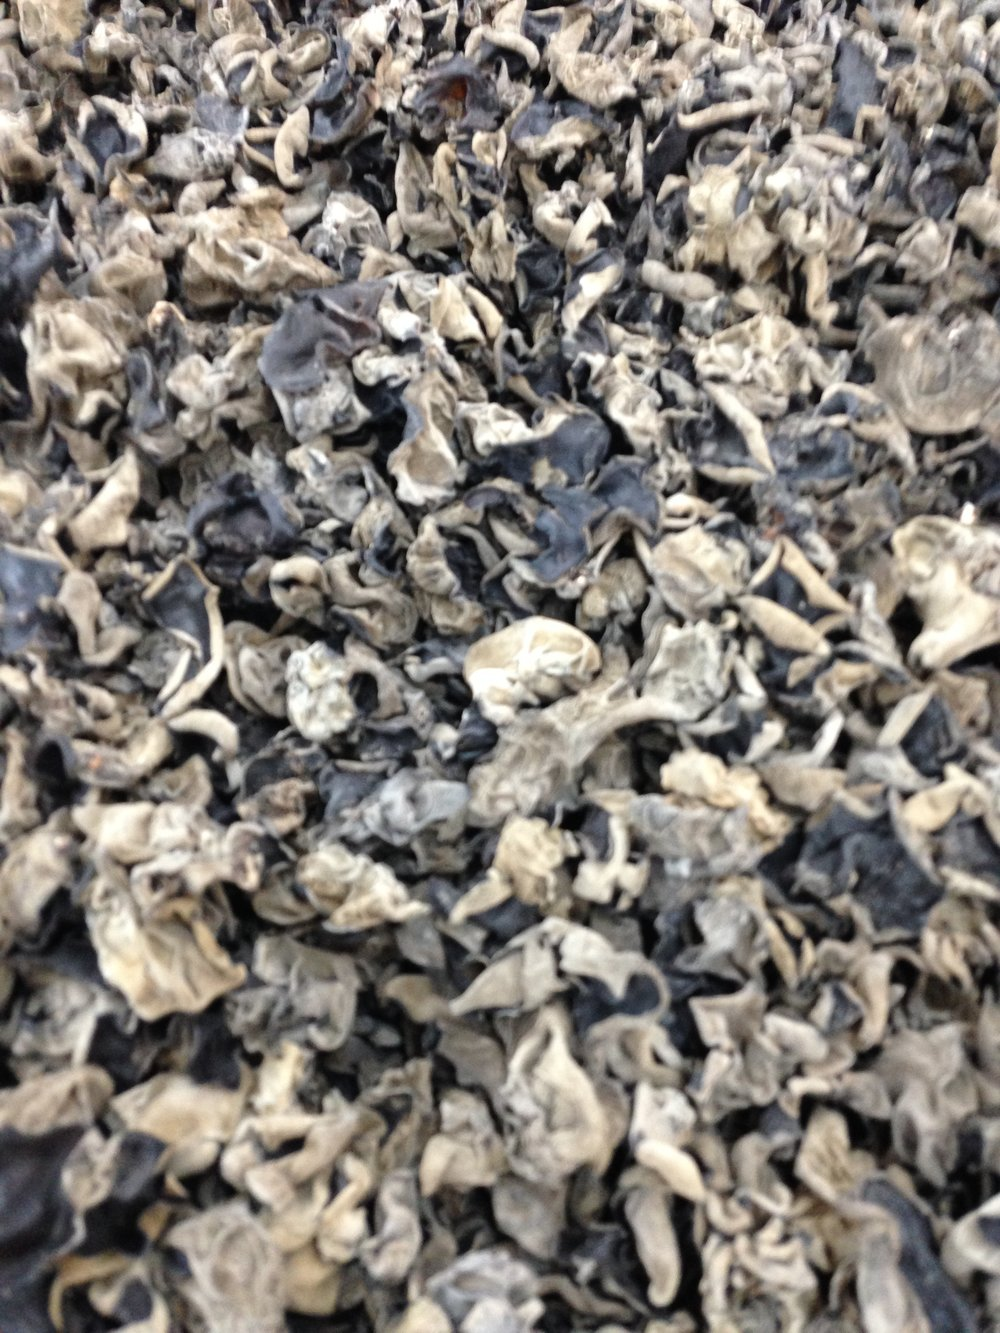 Dried mushrooms in bulk.